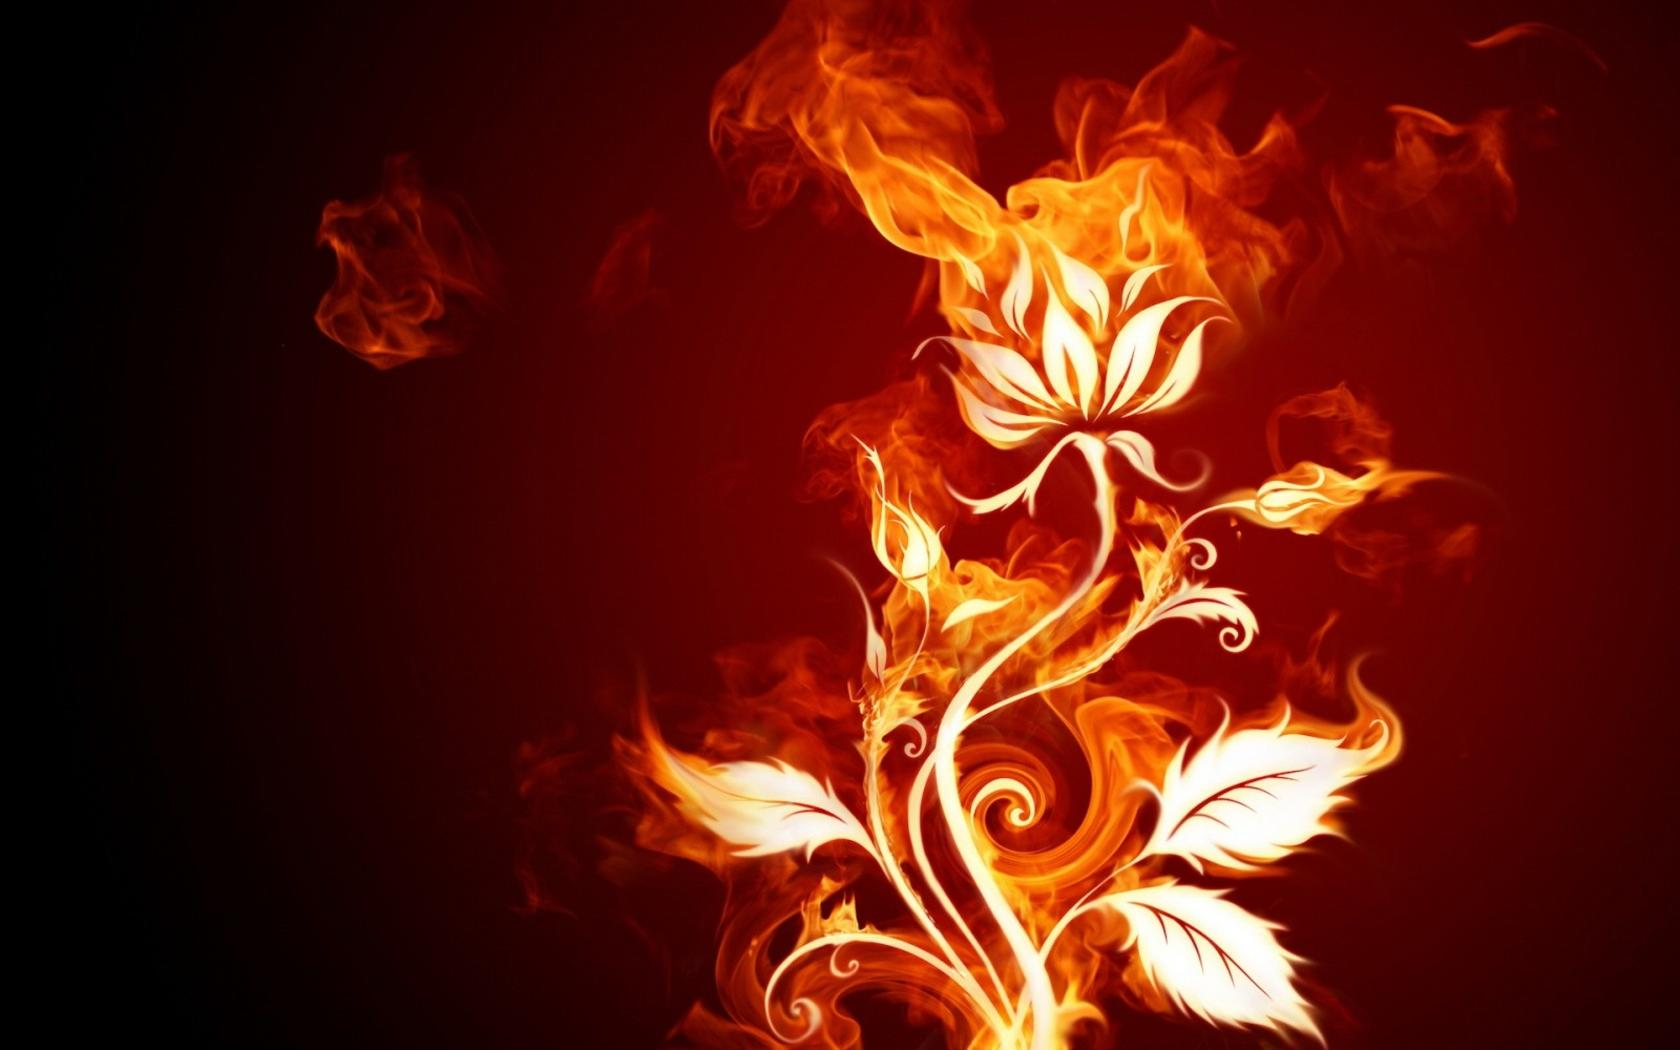 Fire Wallpaper Image Picture High Resolution